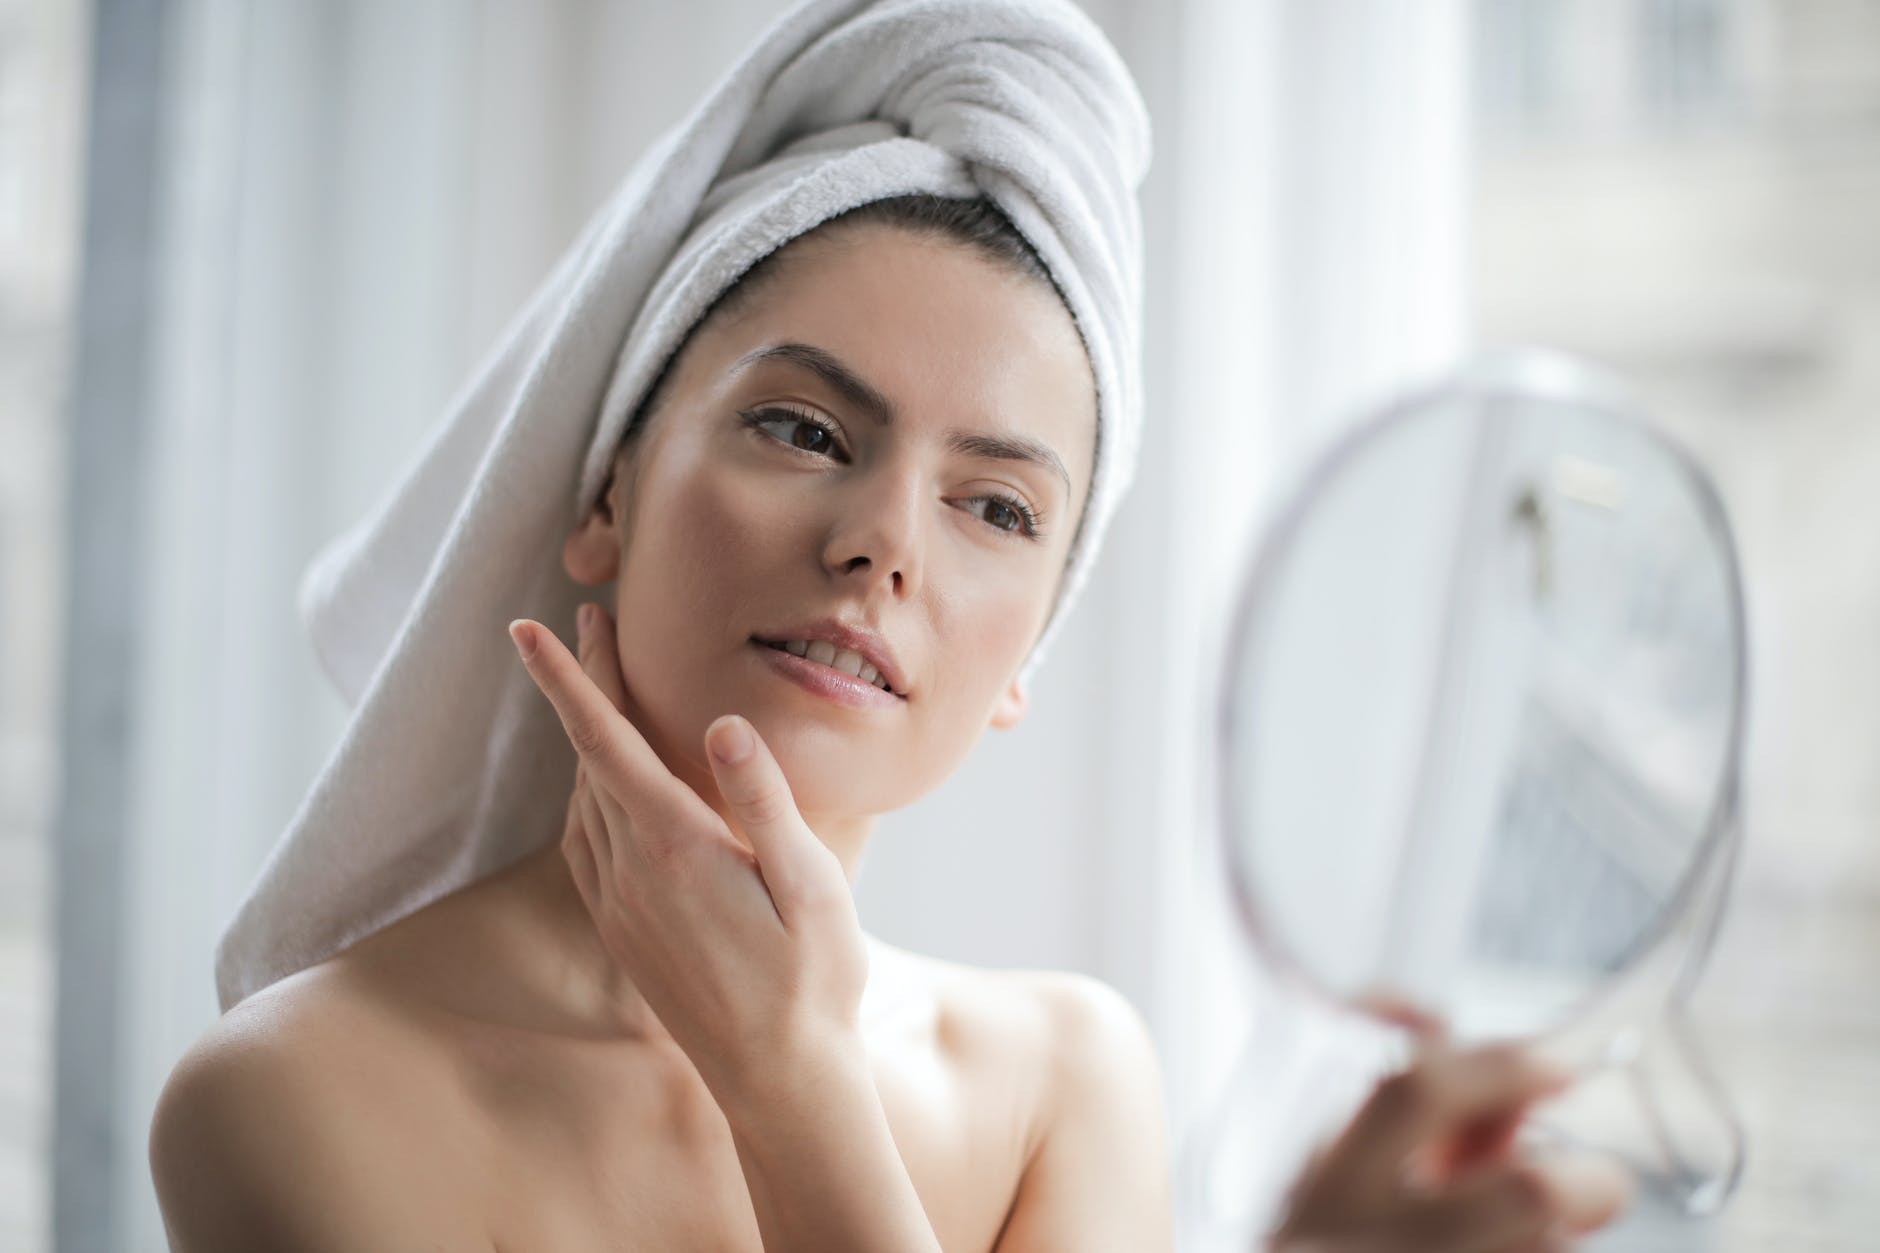 woman looking into a mirror with a towel drying her hair